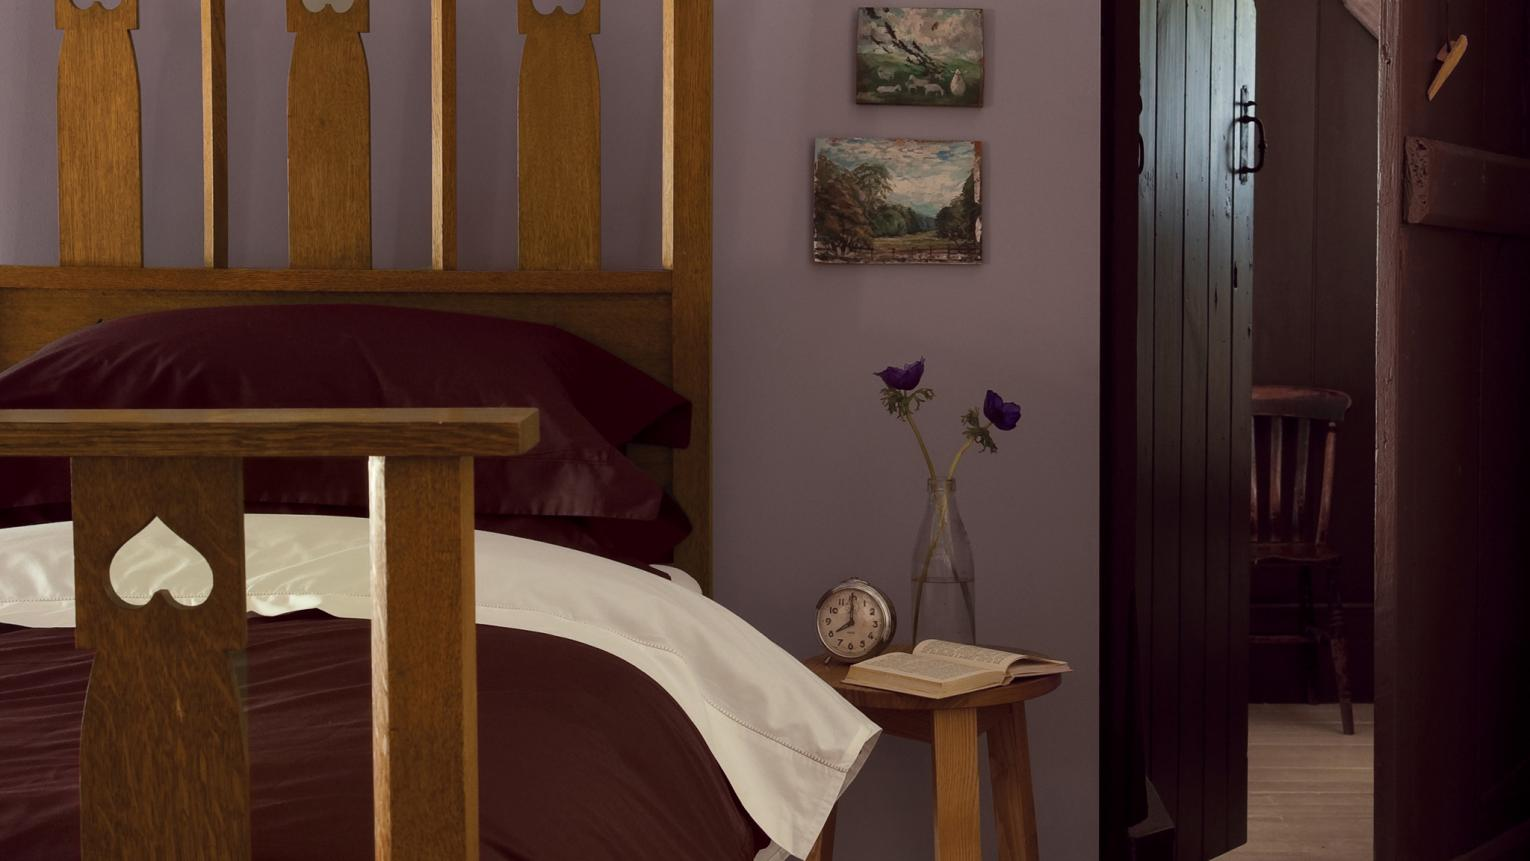 Purple walls bring warmth and nostalgia to this cosy bedroom.